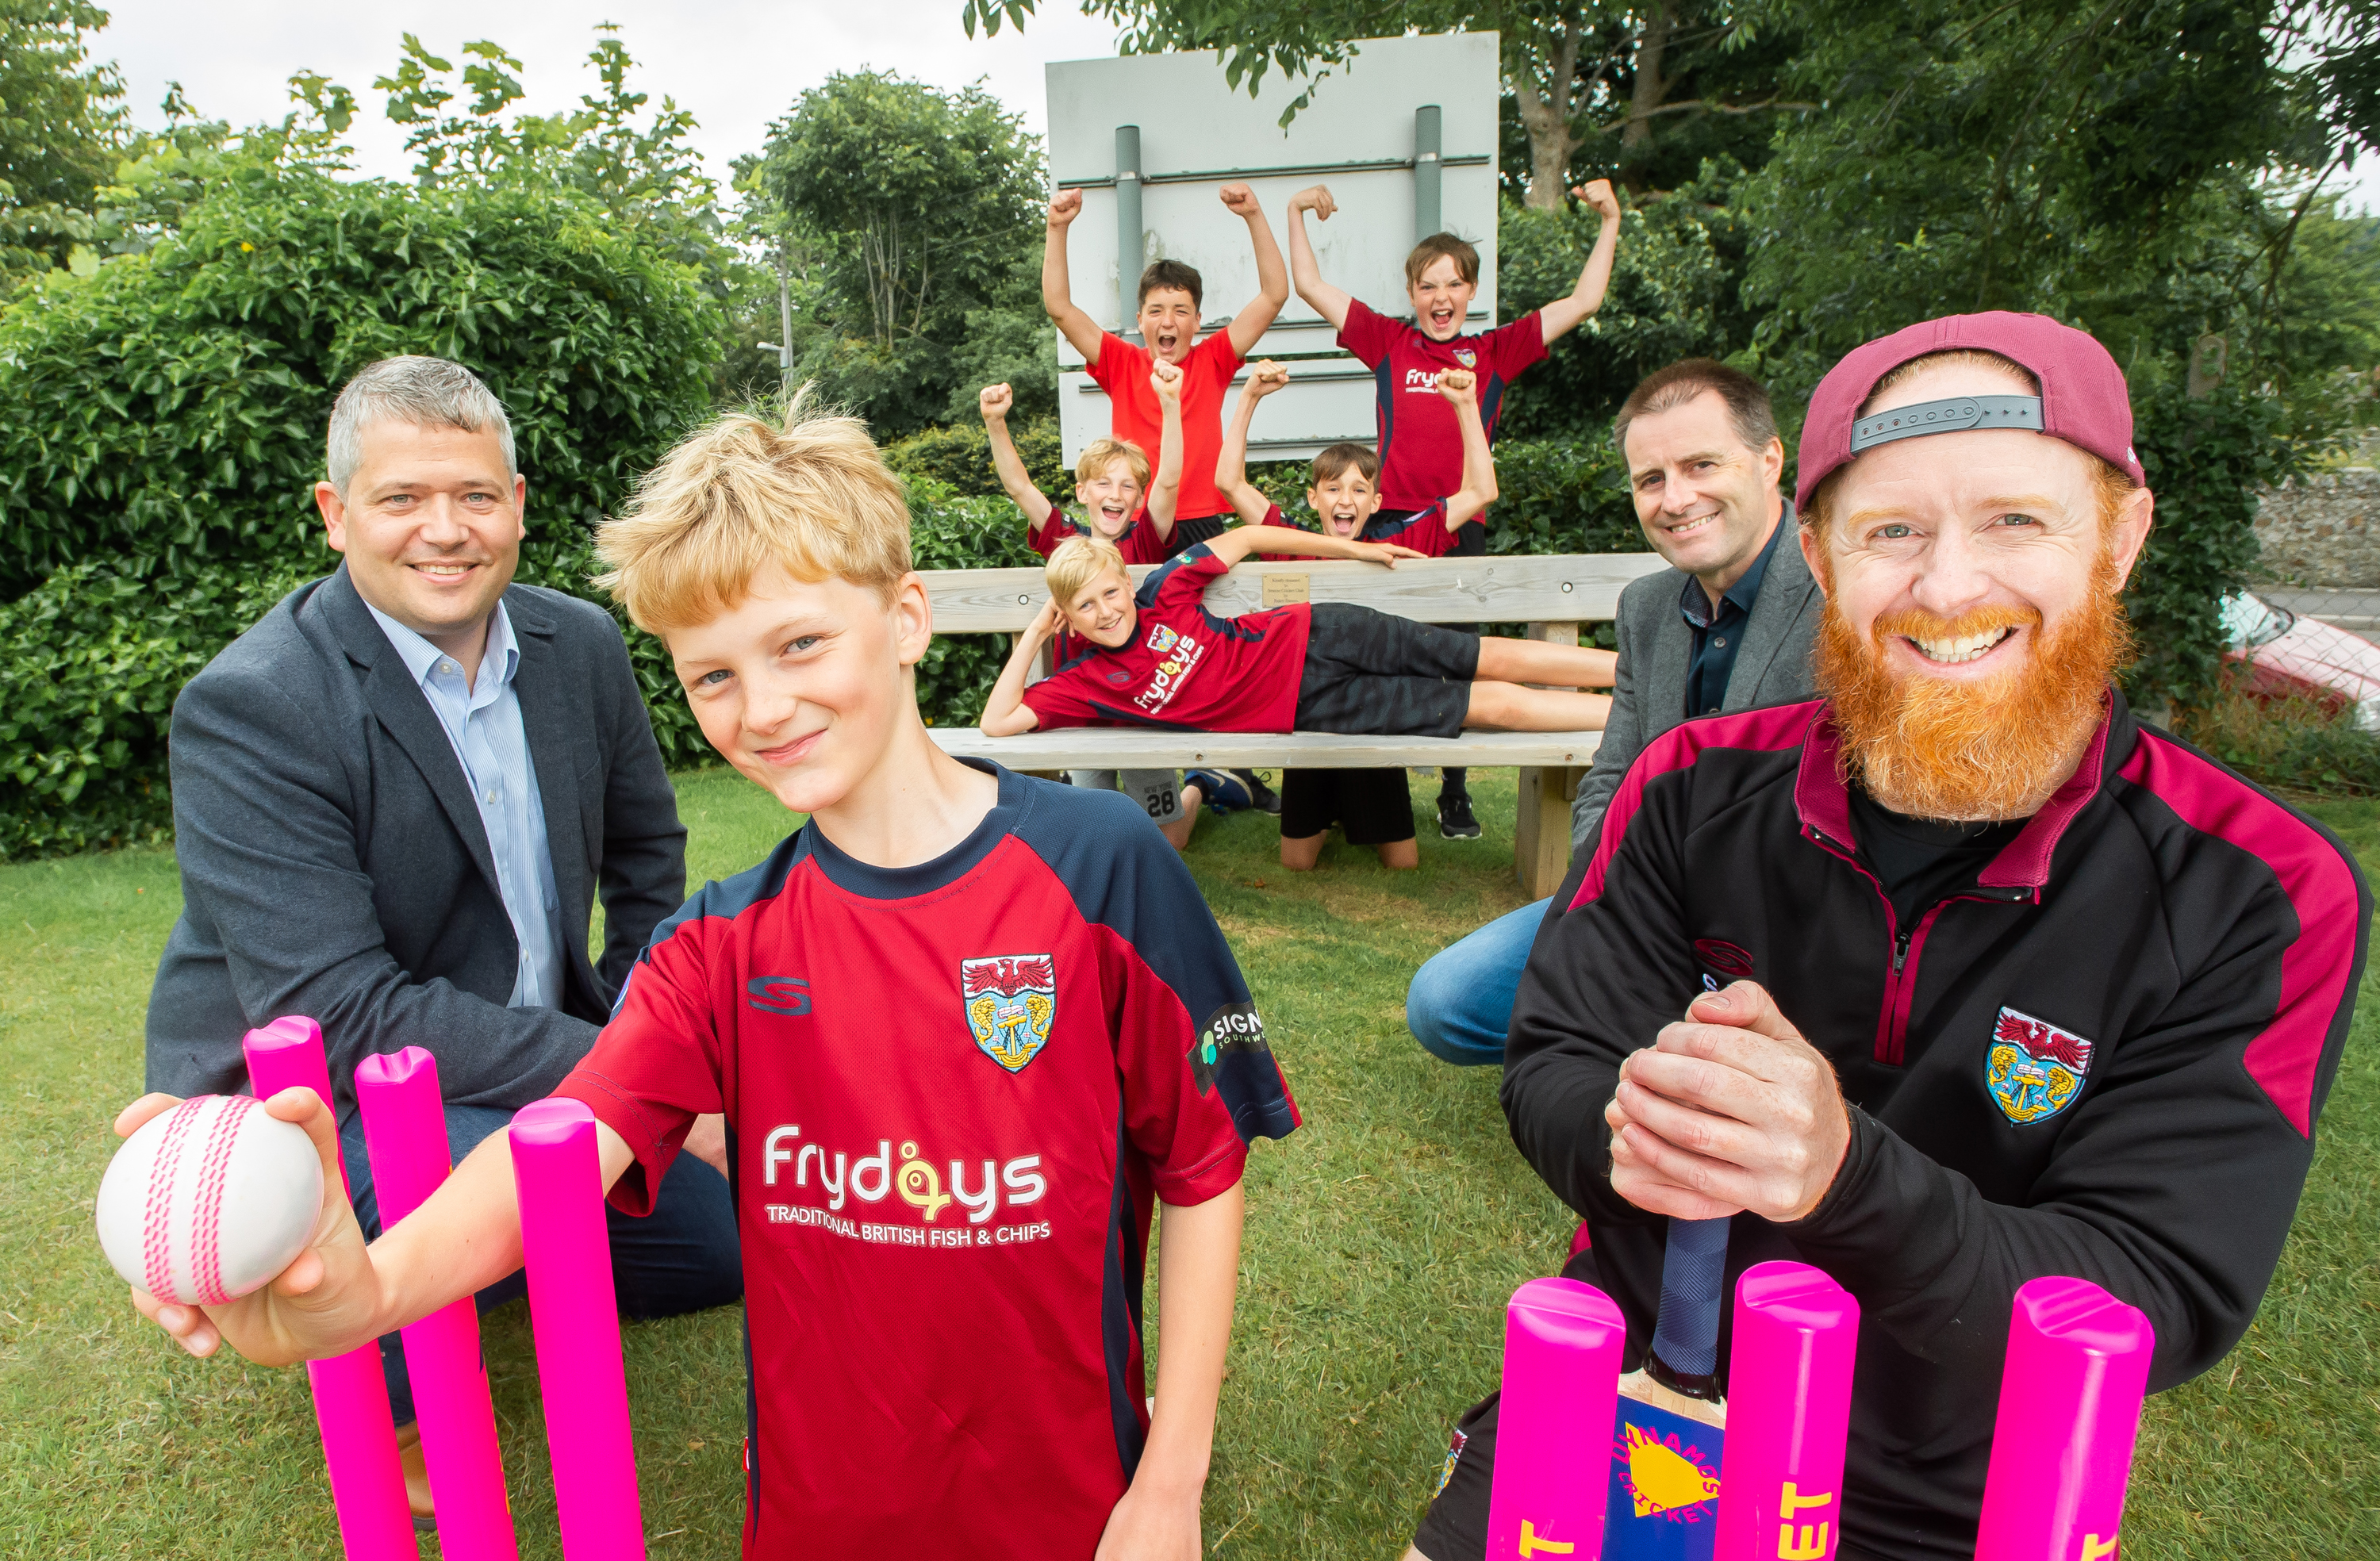 Seaton Cricket club 'bowled over' by gesture from local housebuilder